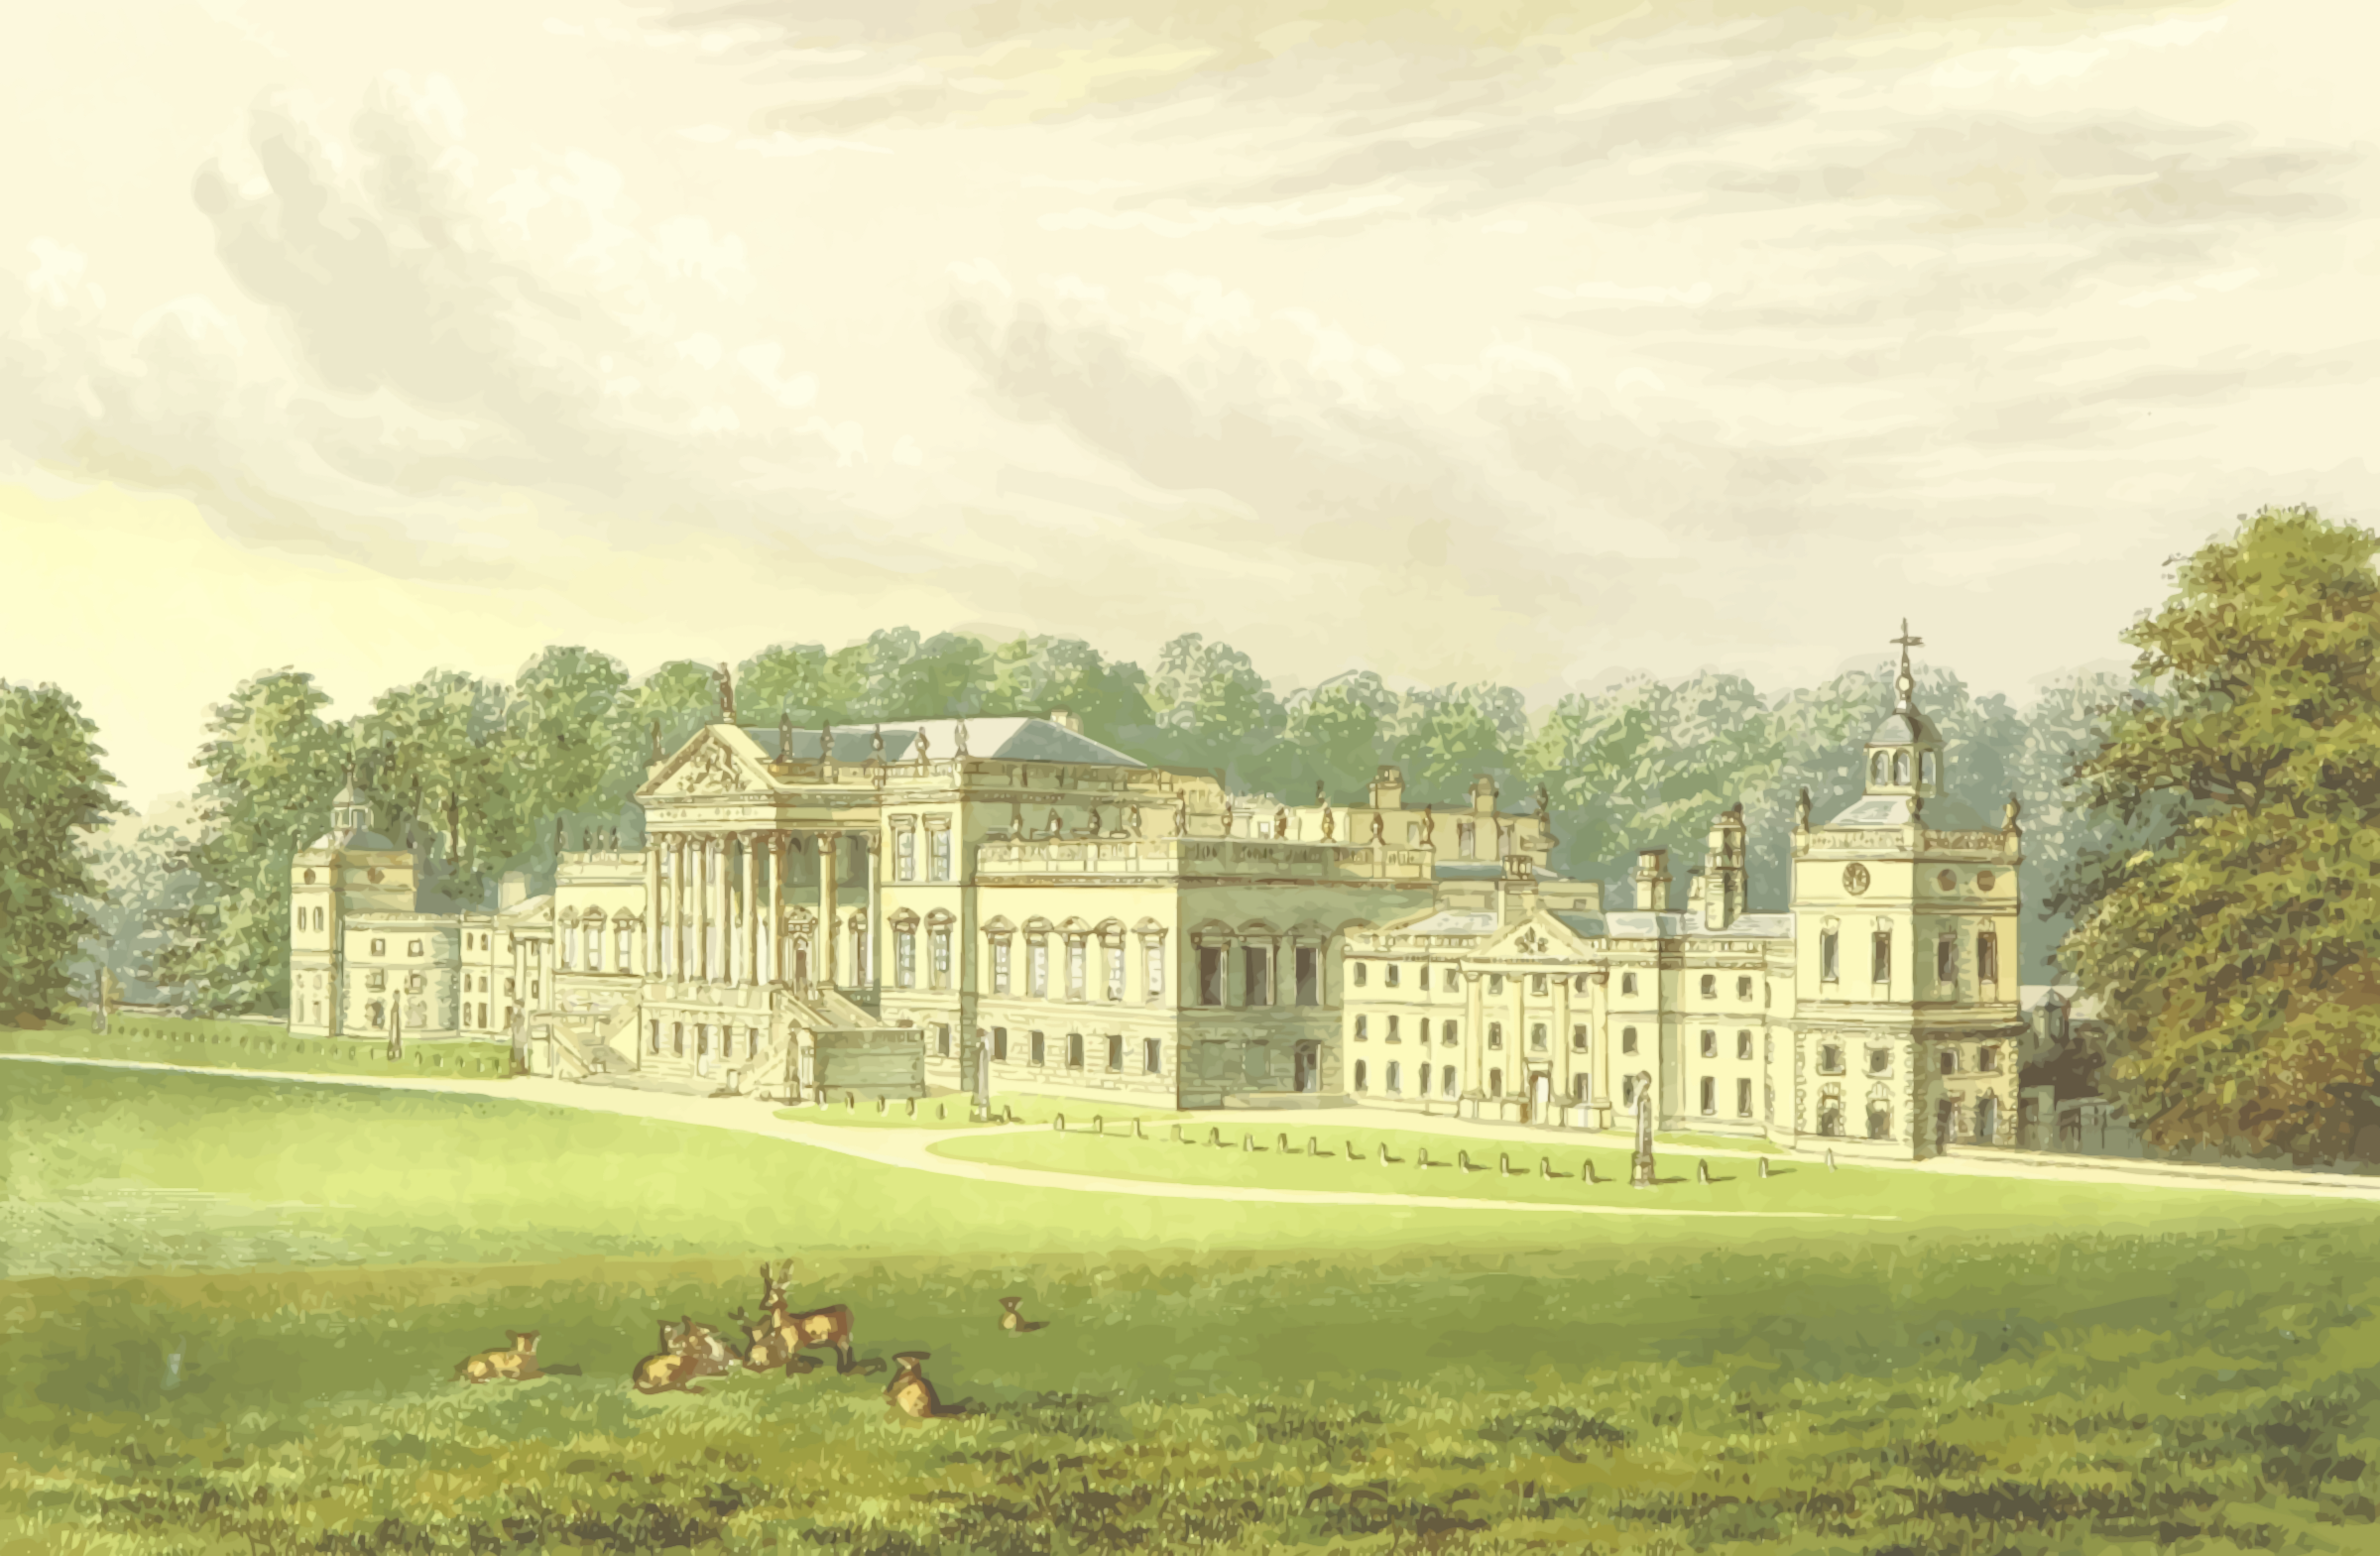 Wentworth House by Firkin